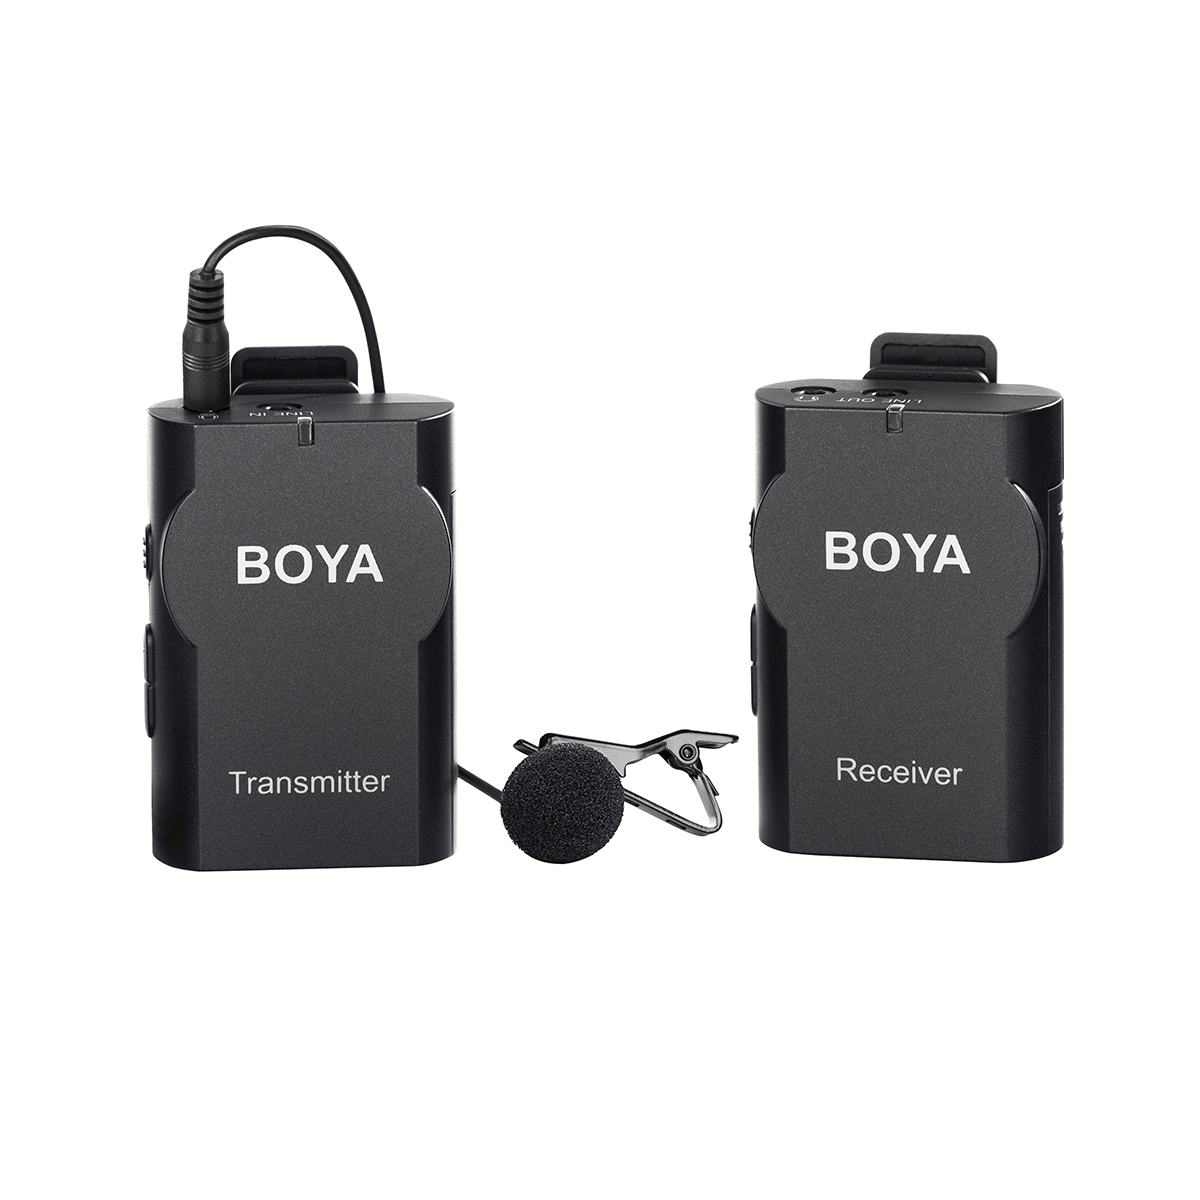 Microphone BOYA BY-WM4 Wireless Microphone system for Canon Nikon Sony Panasonic DSLR Camera Camcorder android smartphone boya by wm4 lavalier wireless microphone system for canon nikon sony panasonic dslr camera camcorder iphone android smartphone